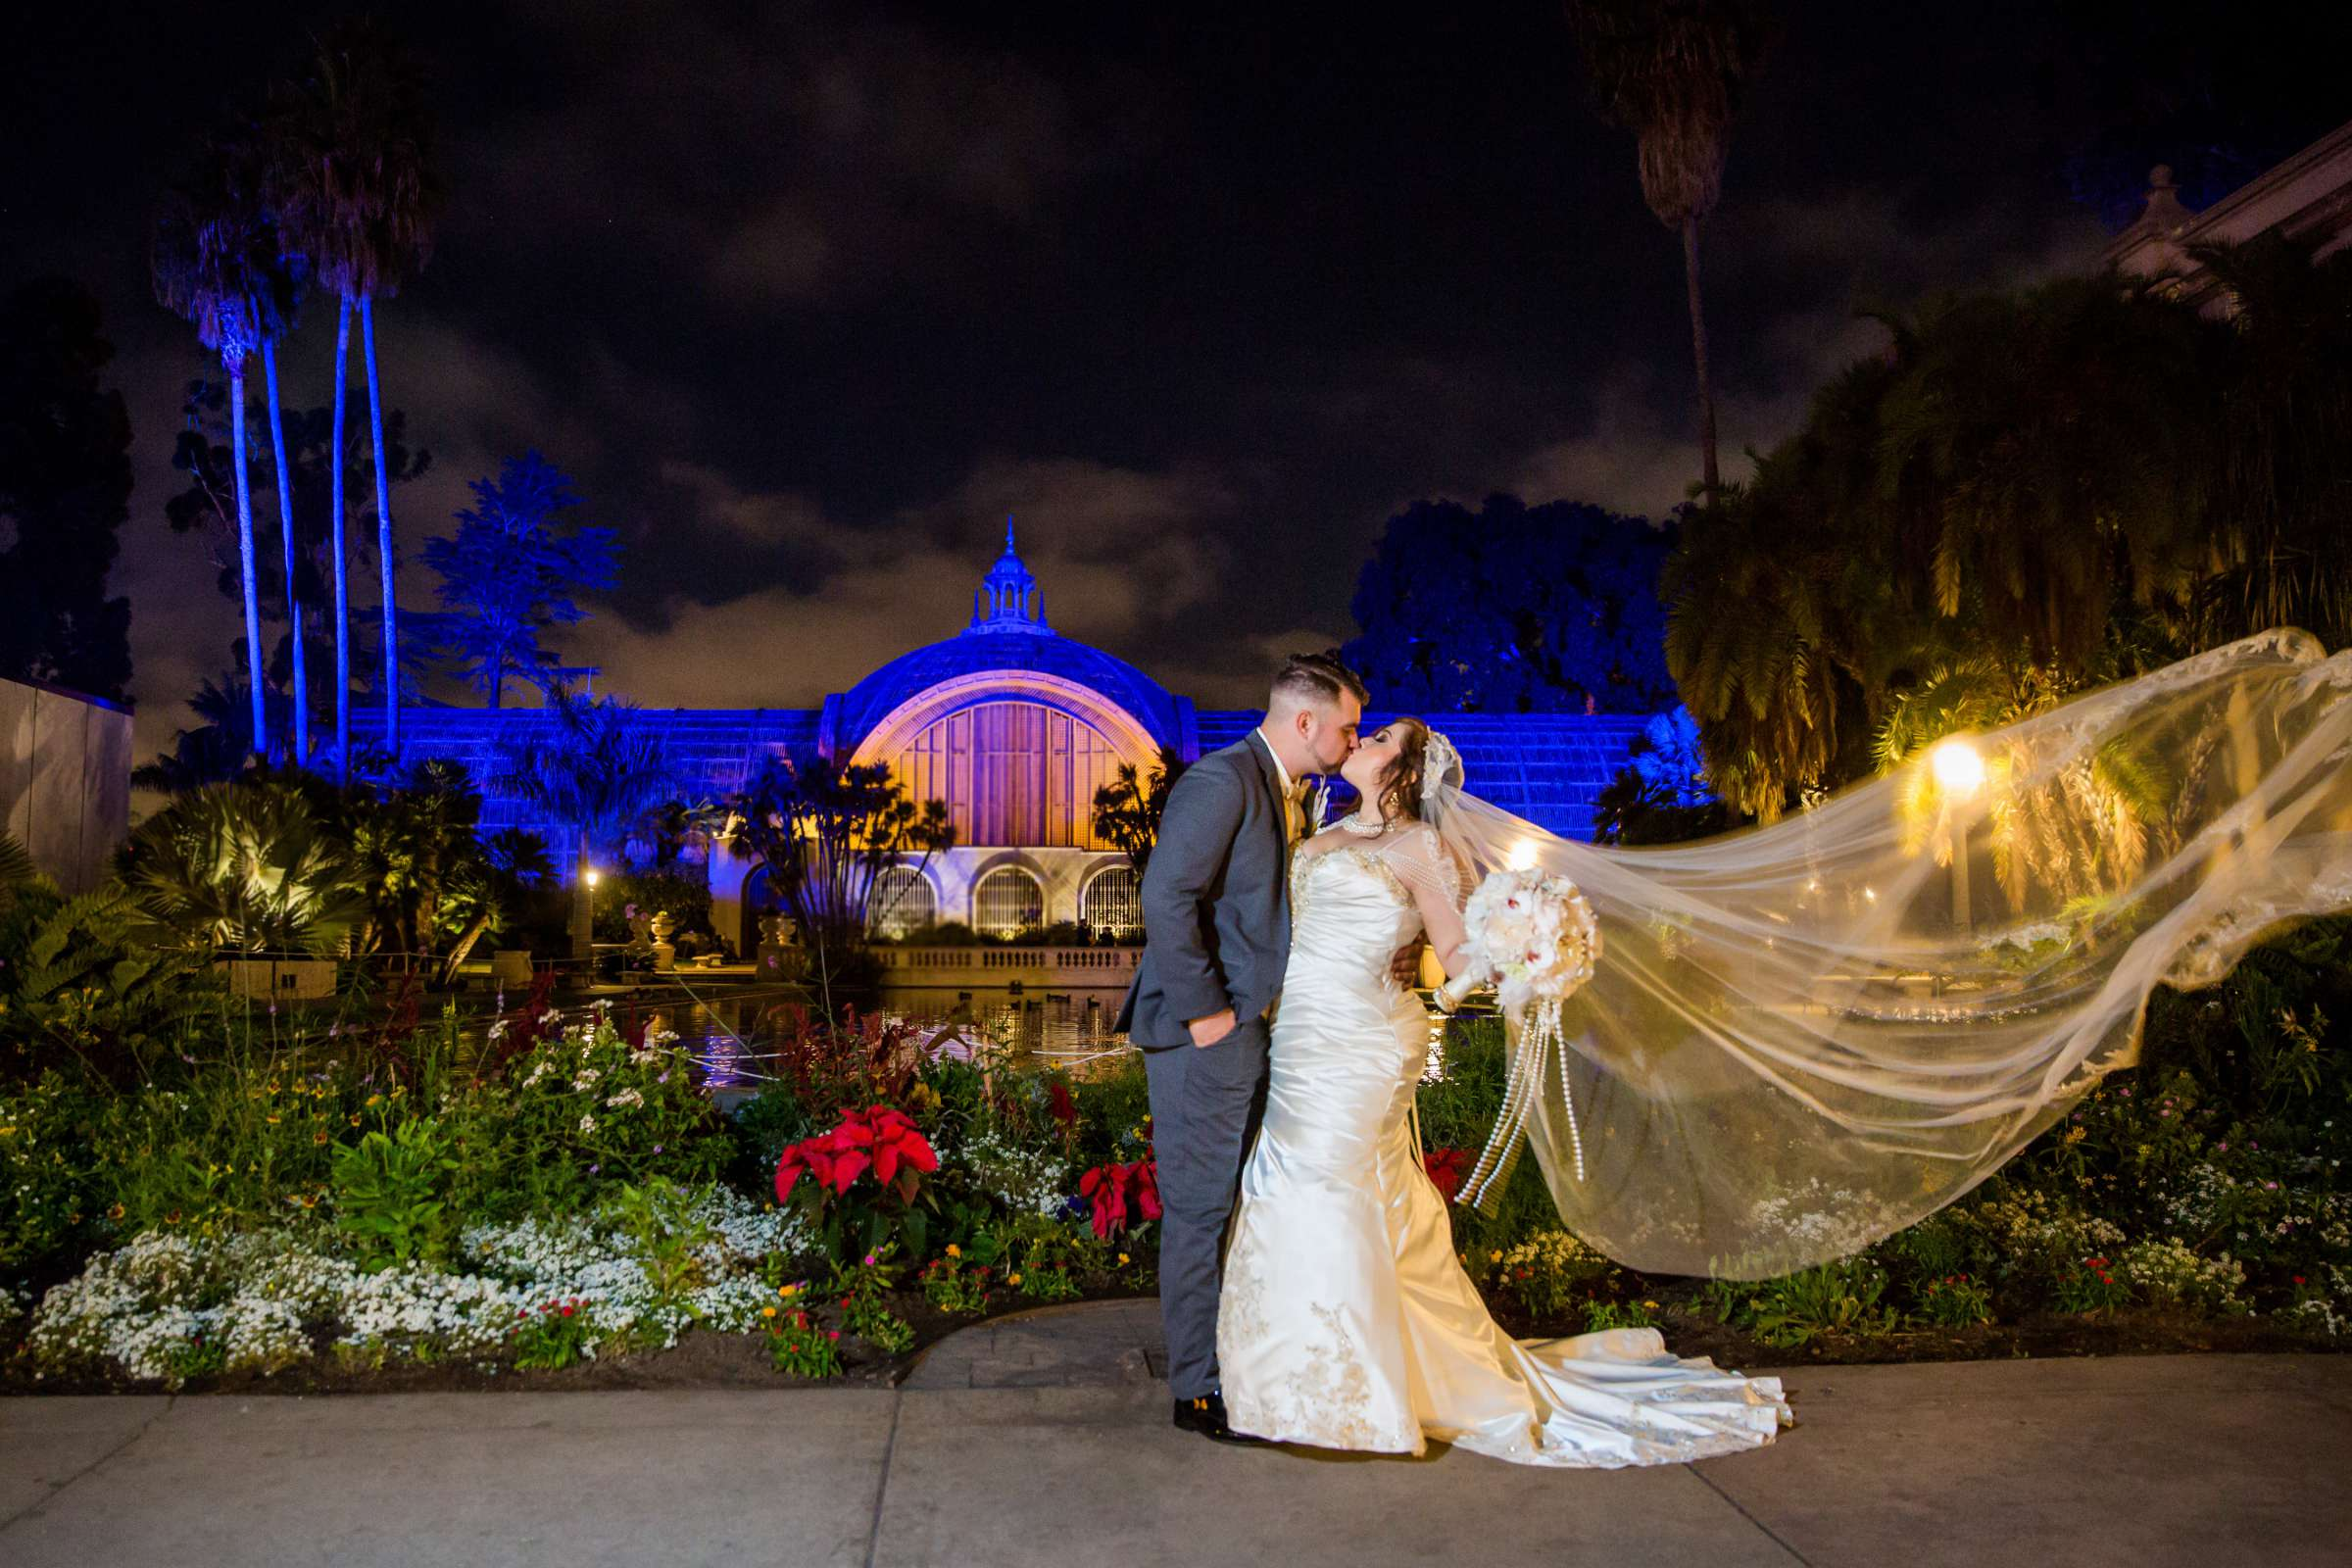 The Prado Wedding coordinated by Breezy Day Weddings, Aalis and Michael Wedding Photo #23 by True Photography